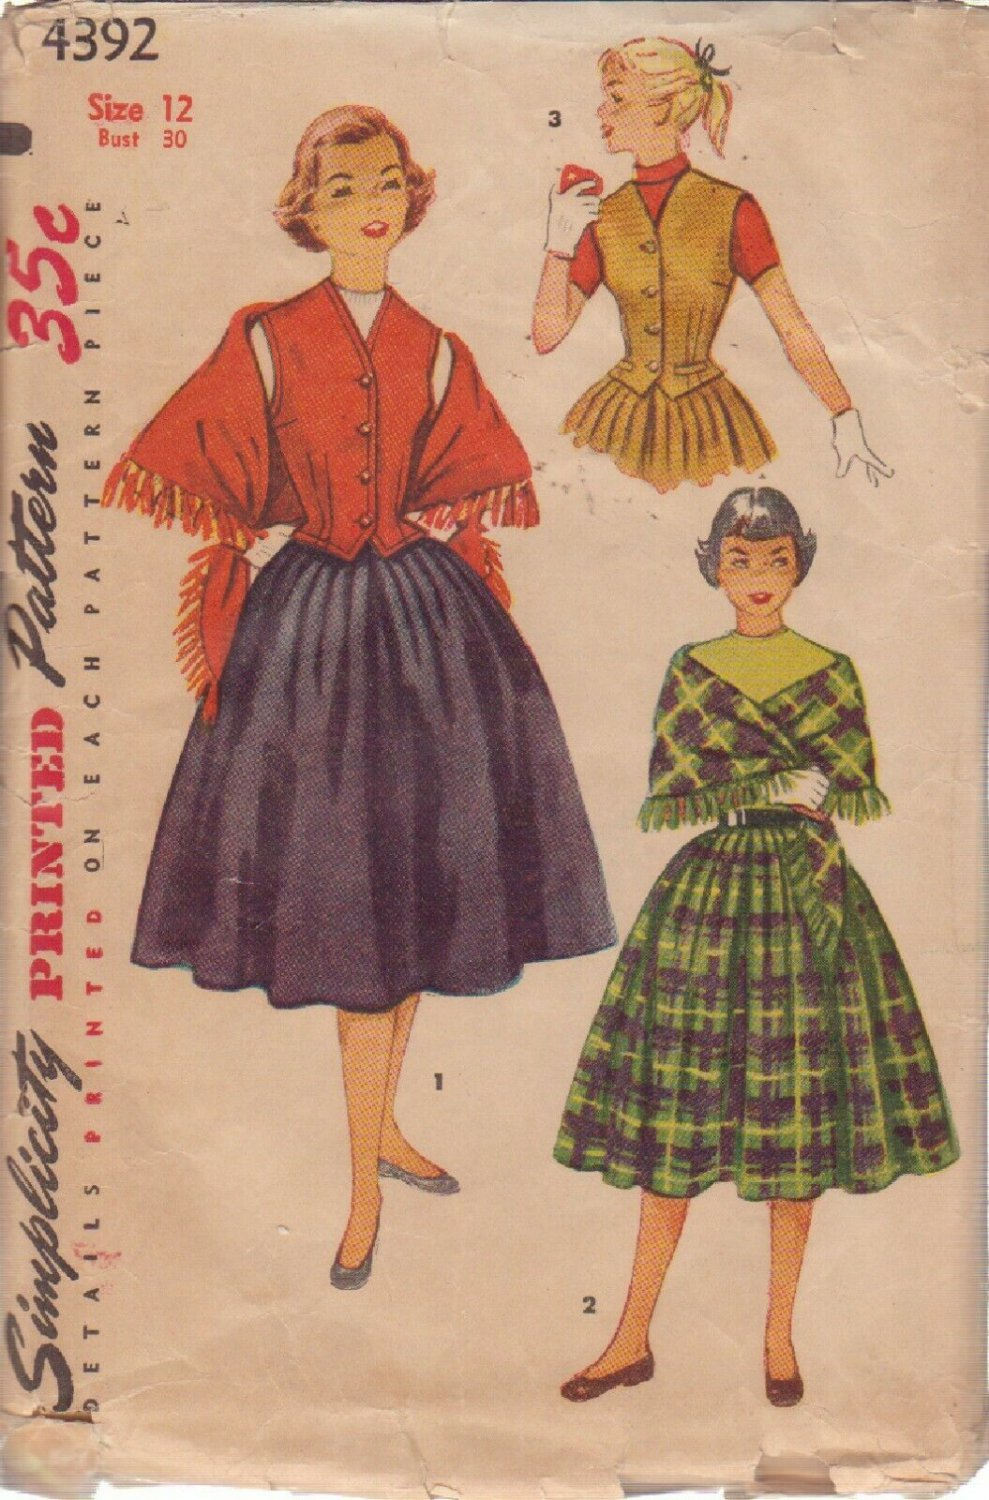 SIMPLICITY PATTERN 4392 SIZE 12 GIRLS� WESKIT, SKIRT AND STOLE